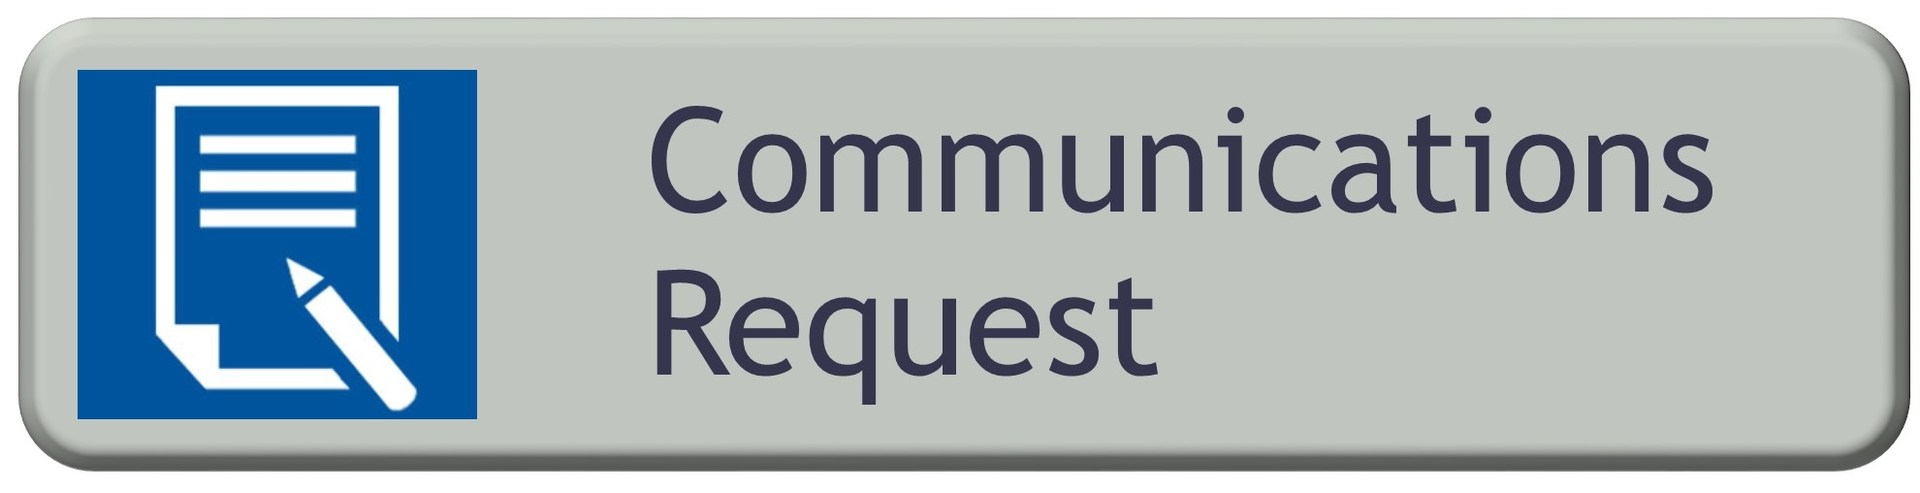 Communications Request